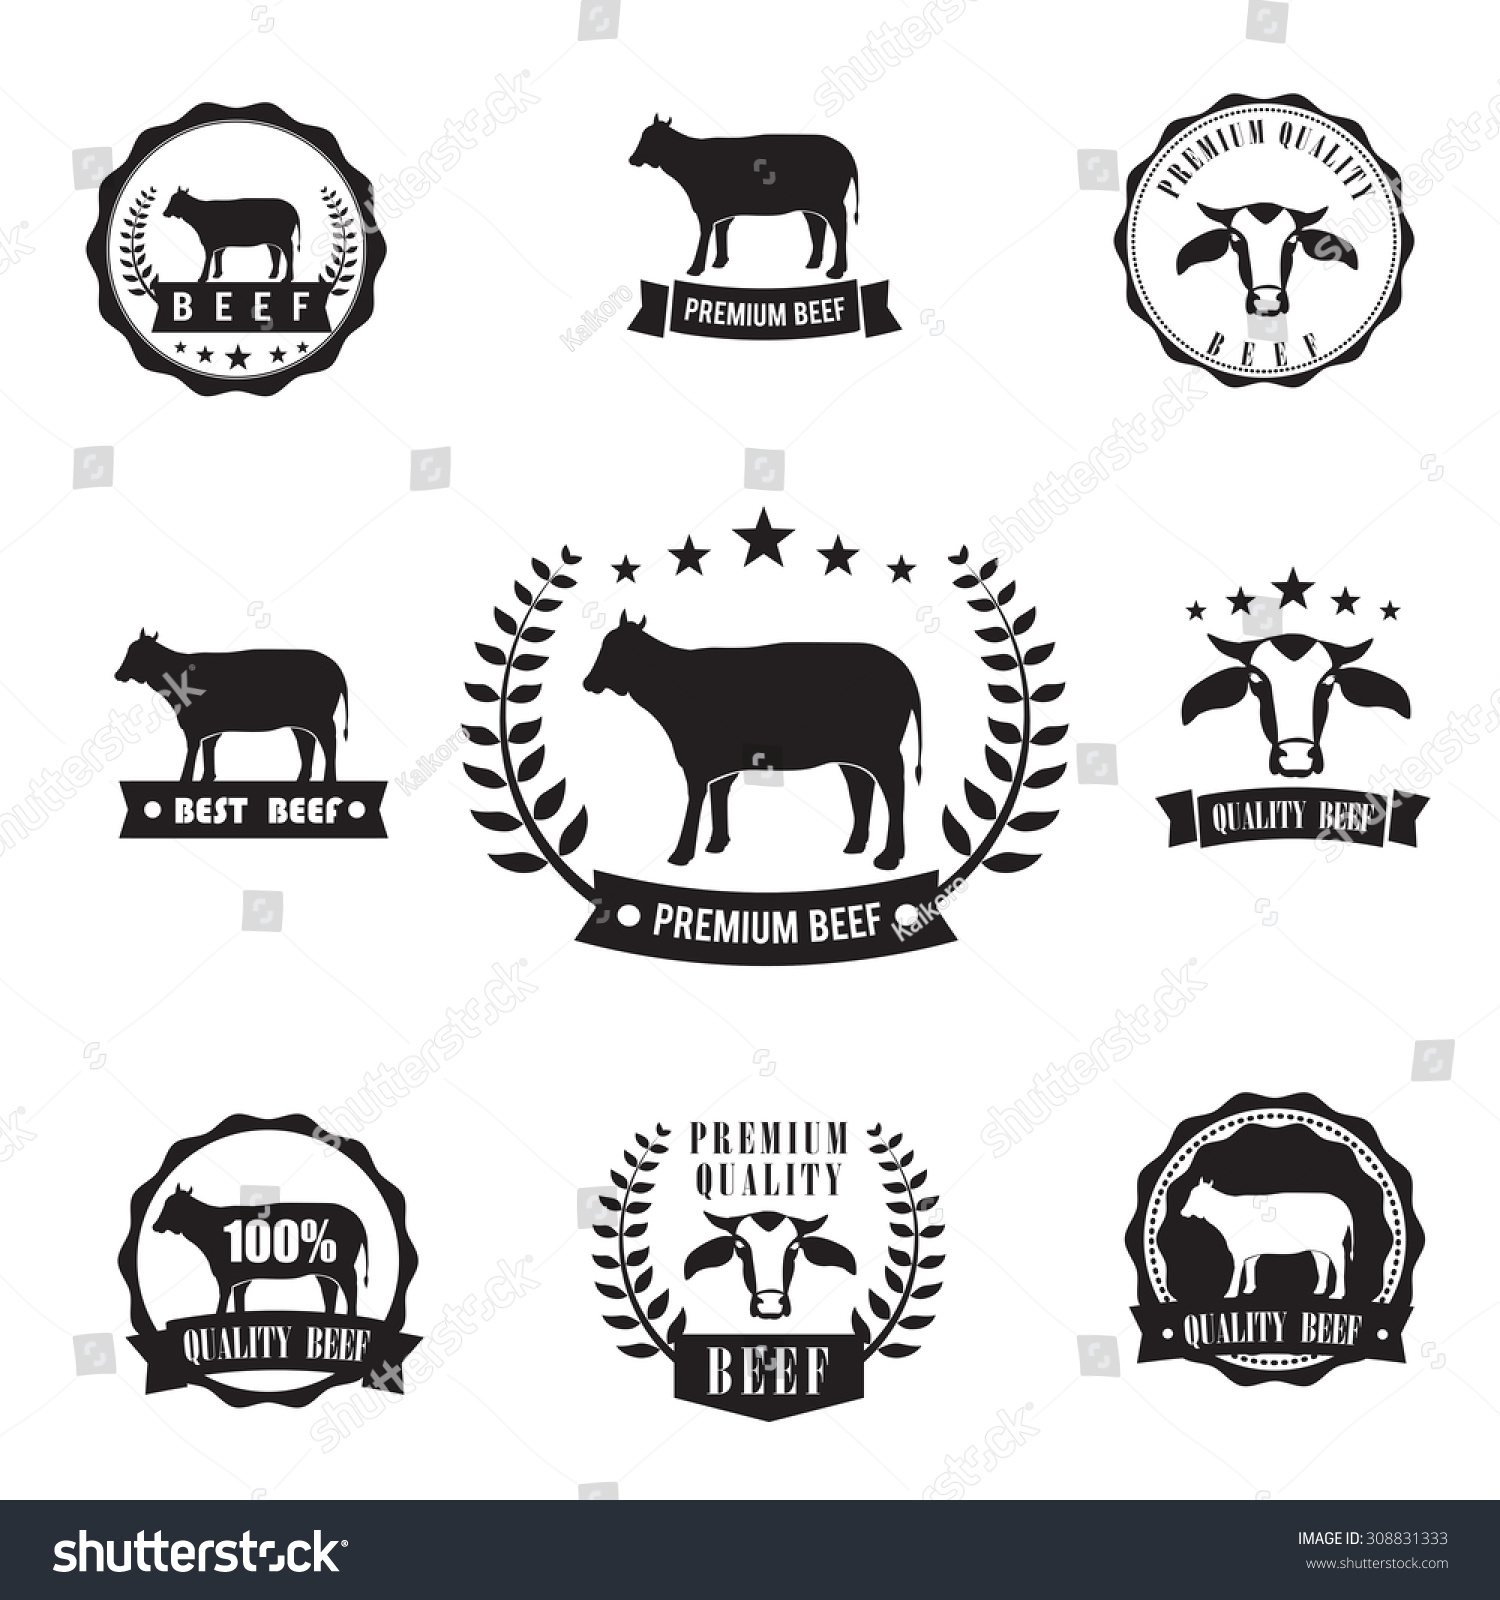 Cow beef sihouette symbol logo stamp stock vector 308831333 cow beef sihouette symbol for logo stamp design element vector illustration buycottarizona